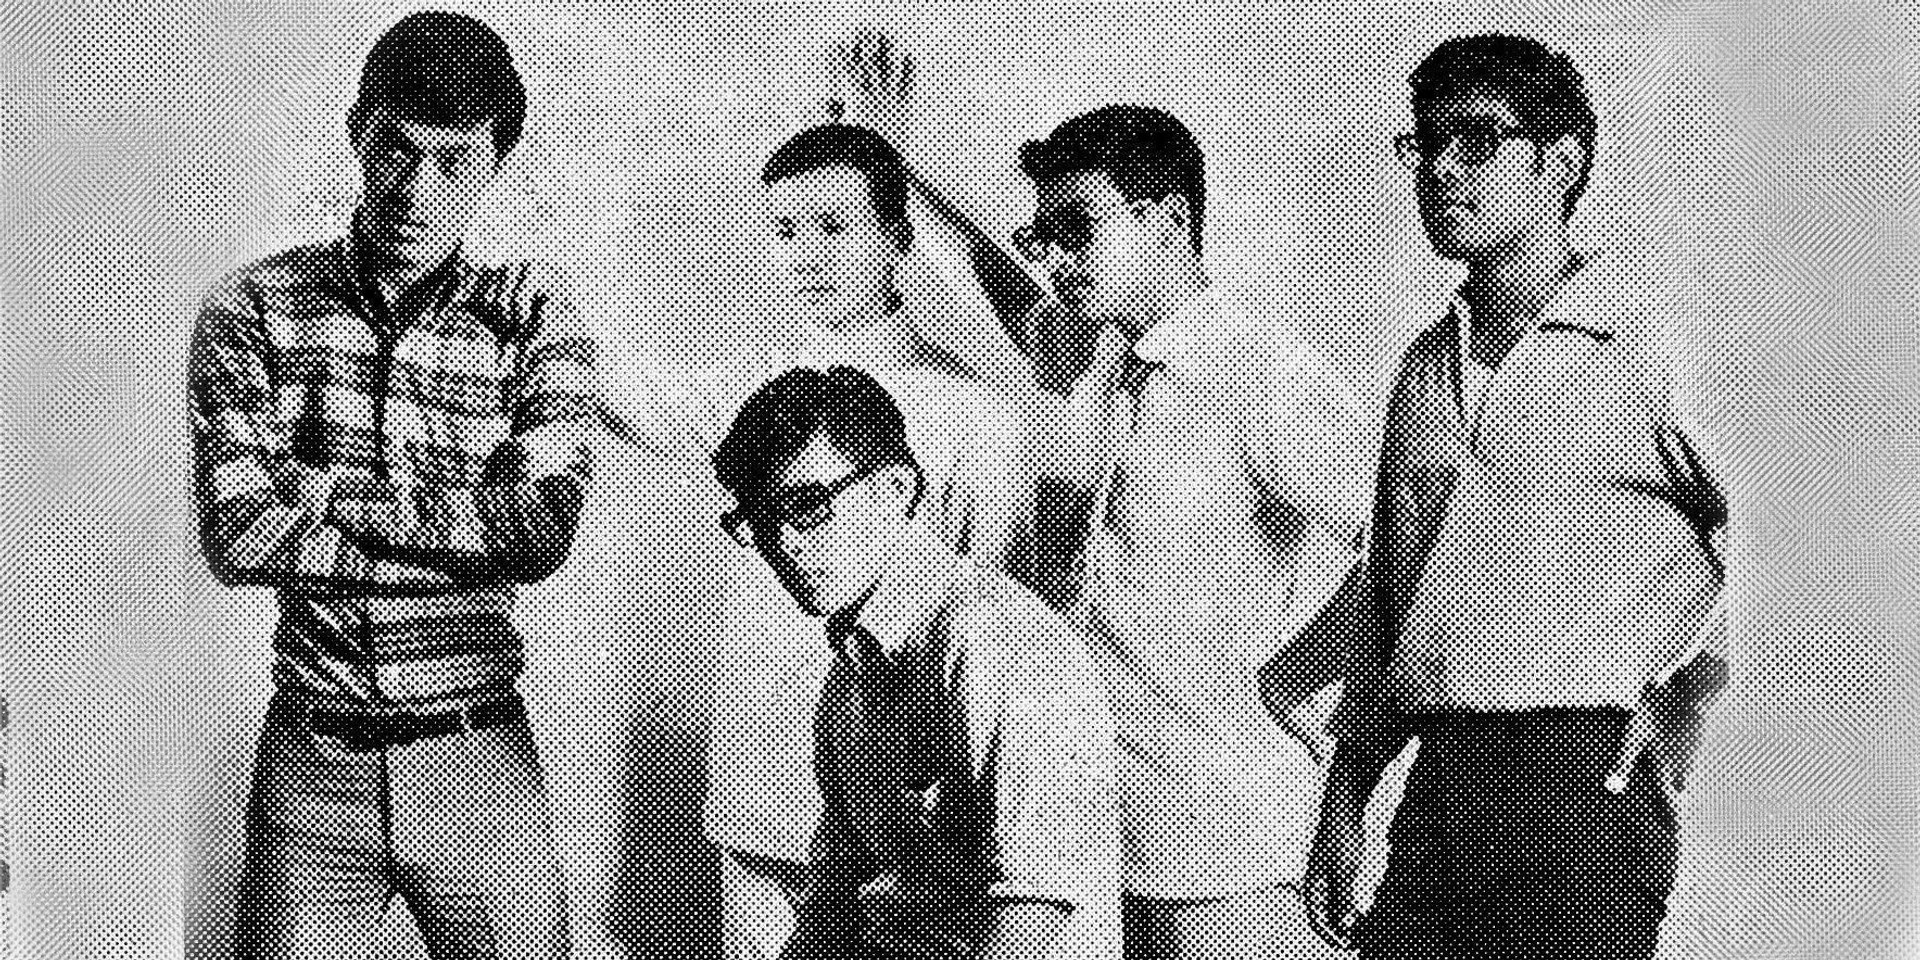 EMI 60s: Rare recordings from 1960s Singapore restored and remastered